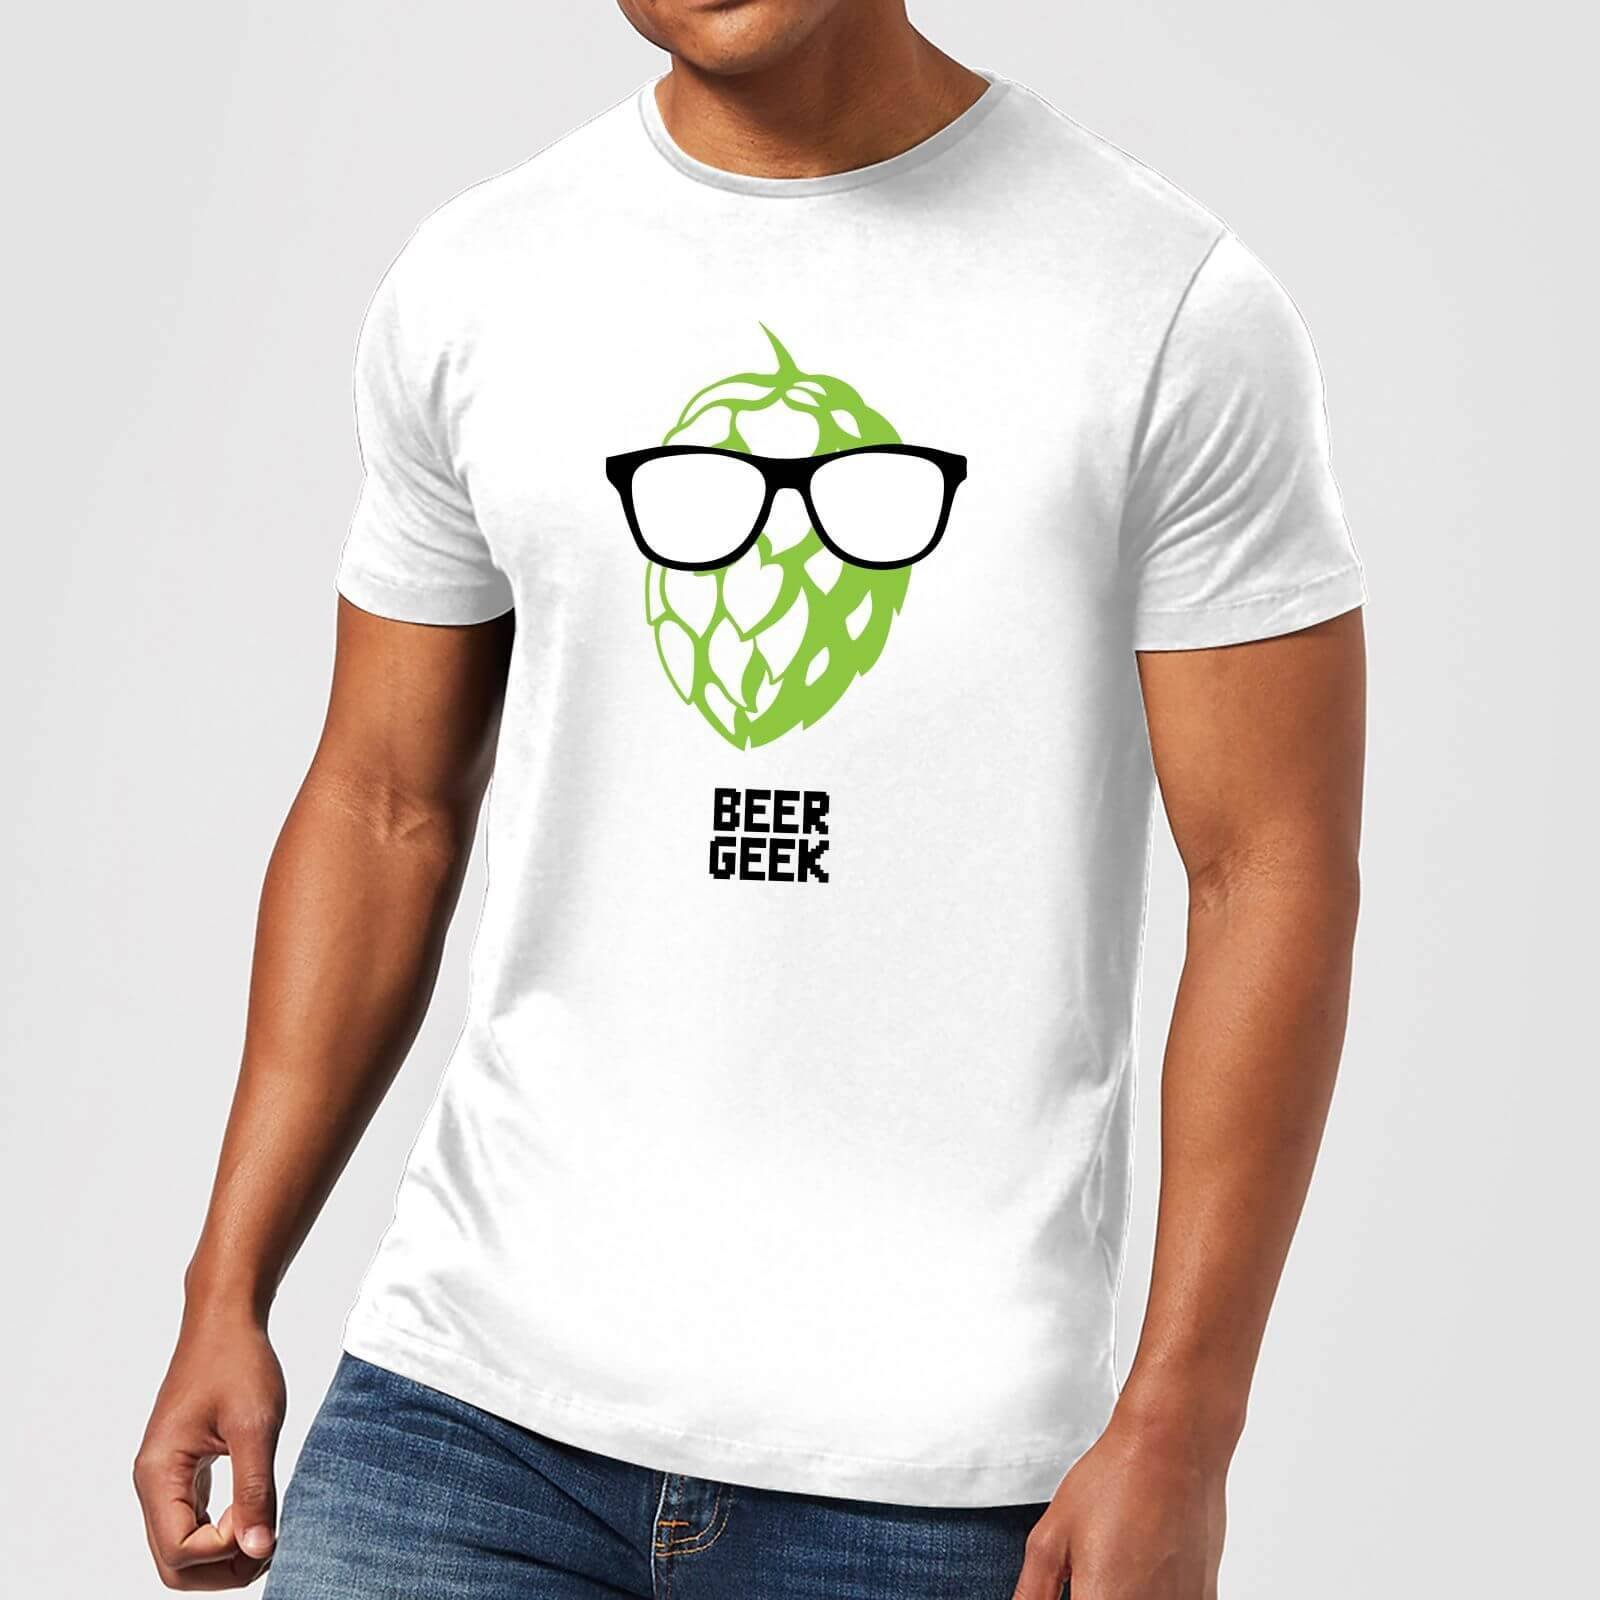 Beershield Beer Geek Men's T-Shirt - M - White